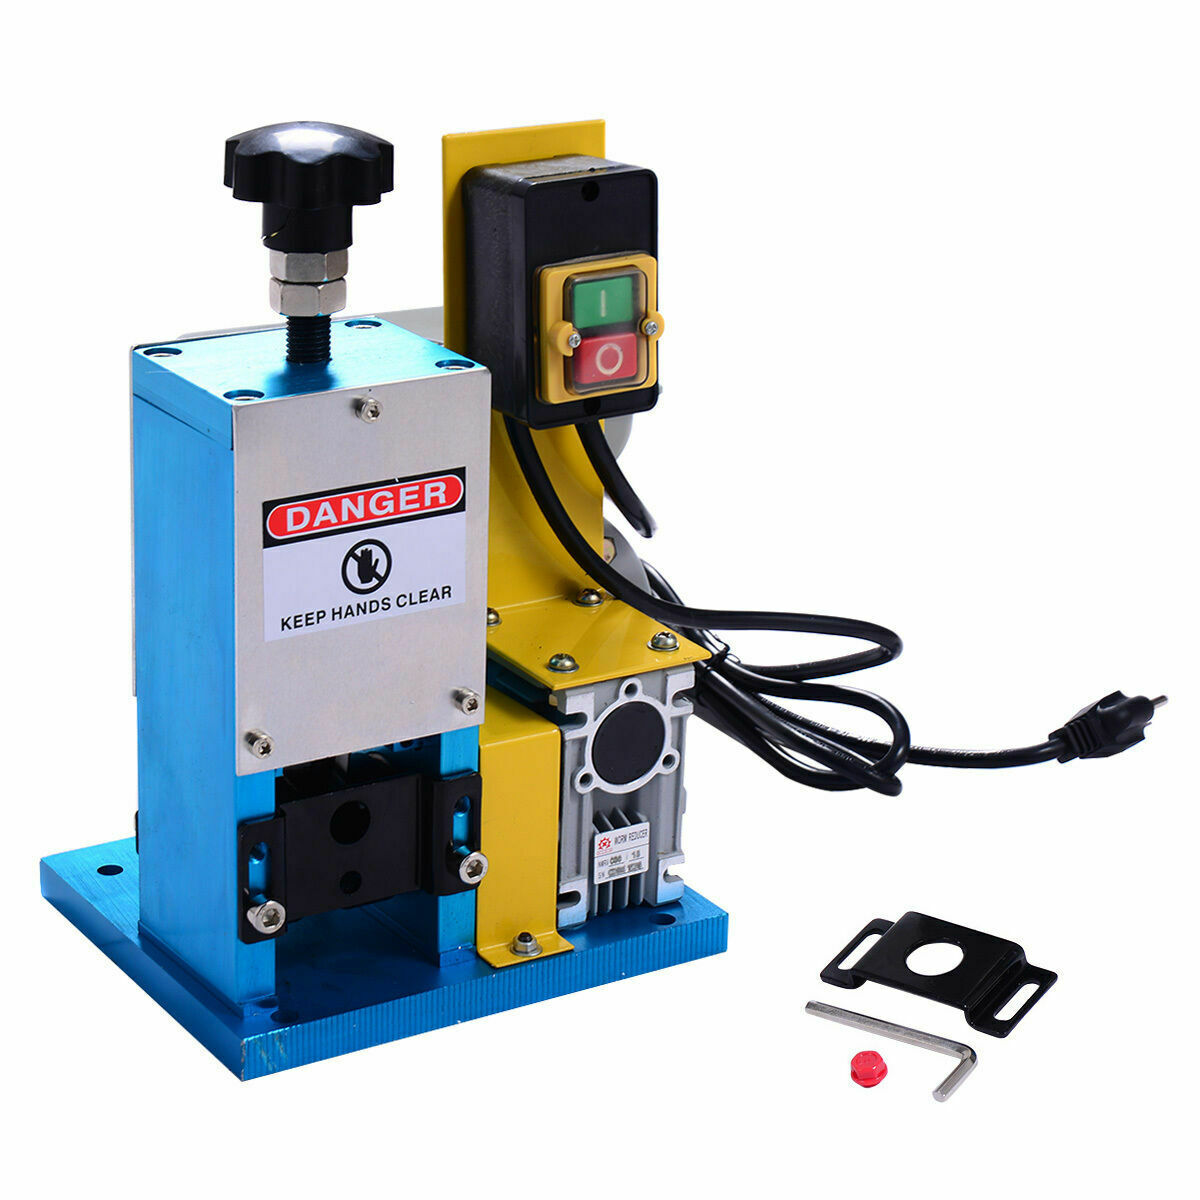 Powered Electric Wire Stripping Machine Metal Tool Scrap Cable Harness Stripper Portable 1 Of 10free Shipping